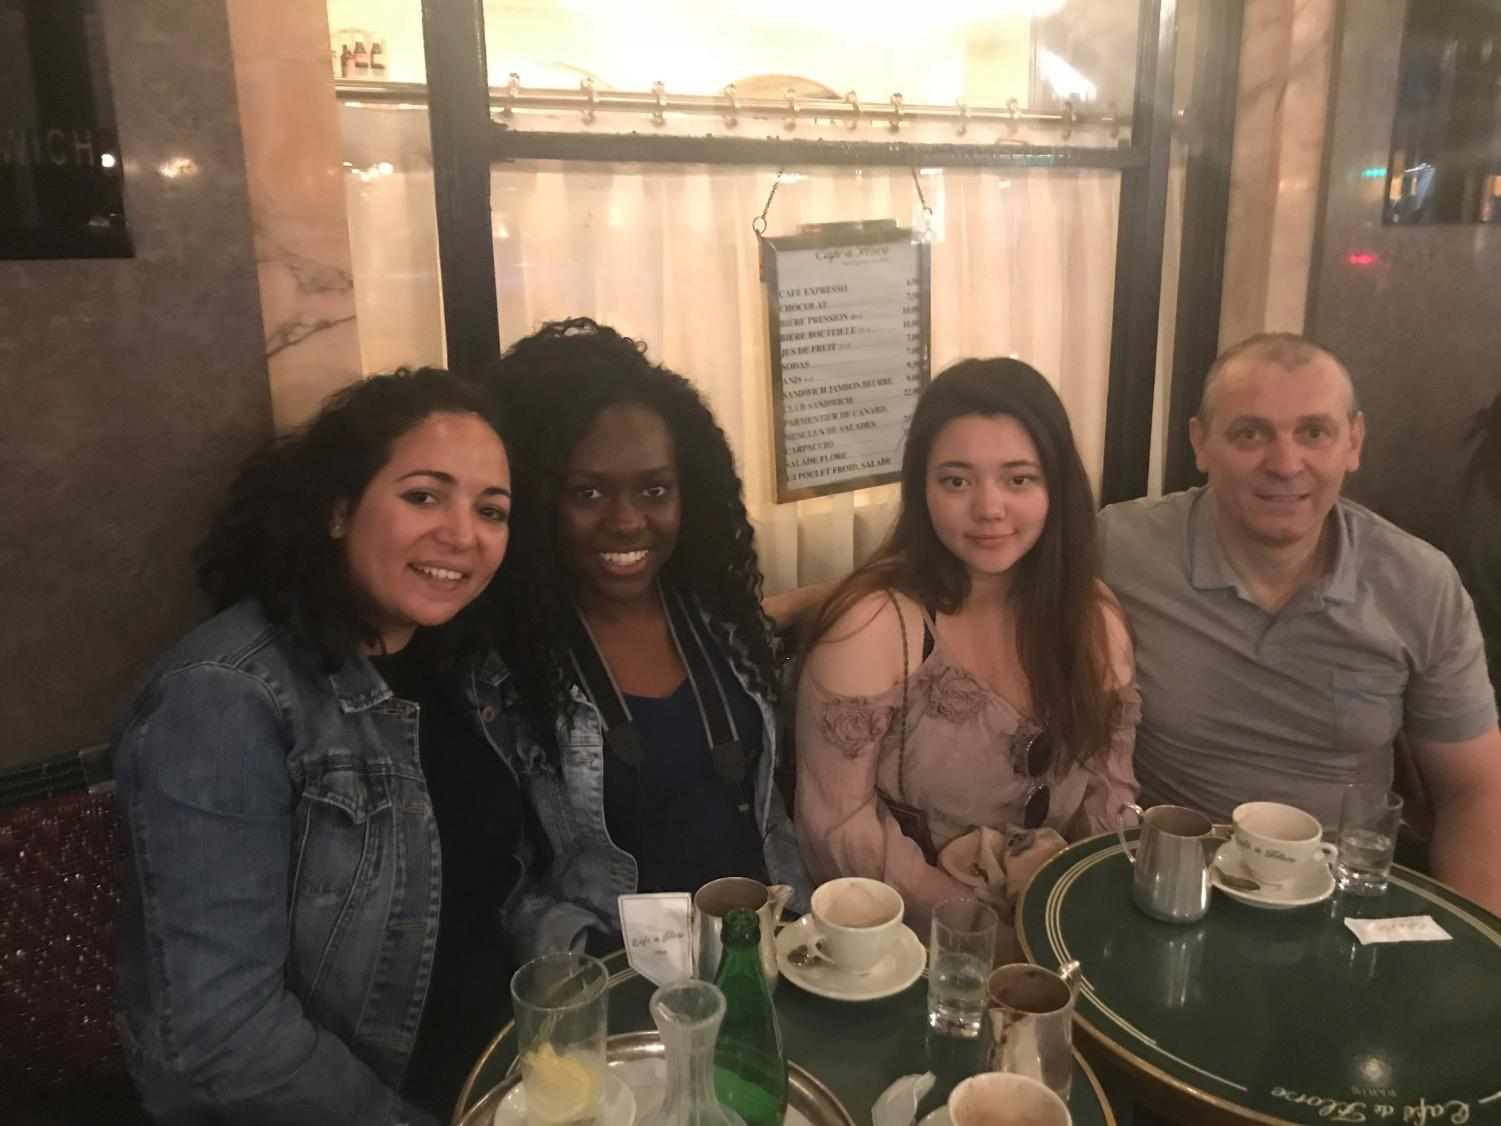 Pictured: Mayila Deus '19 with her host family in Paris.